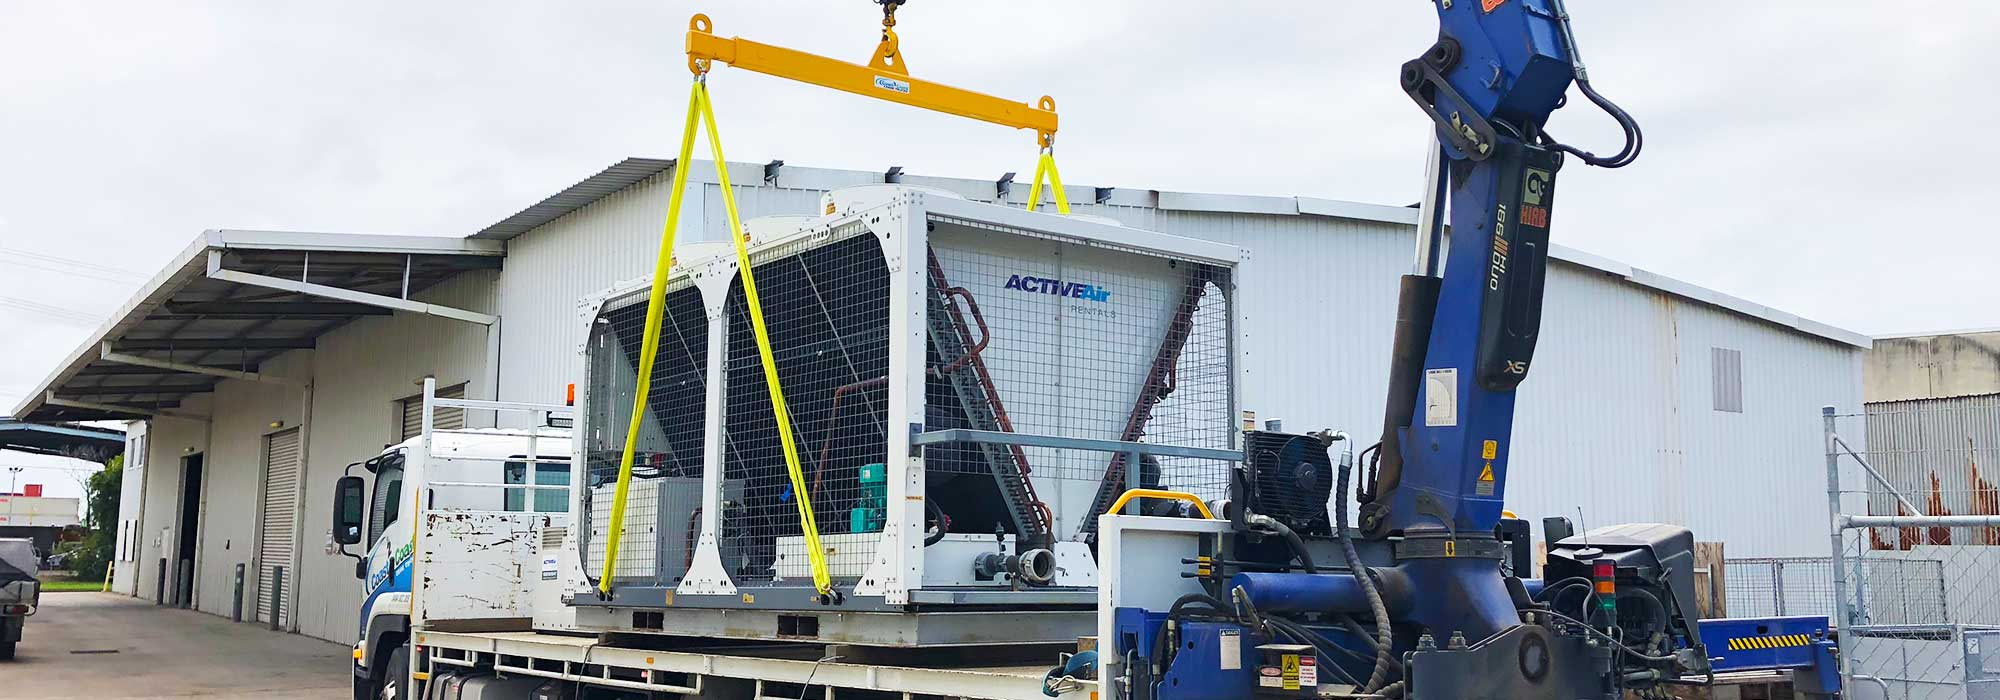 160 kW Low Temp Chiller